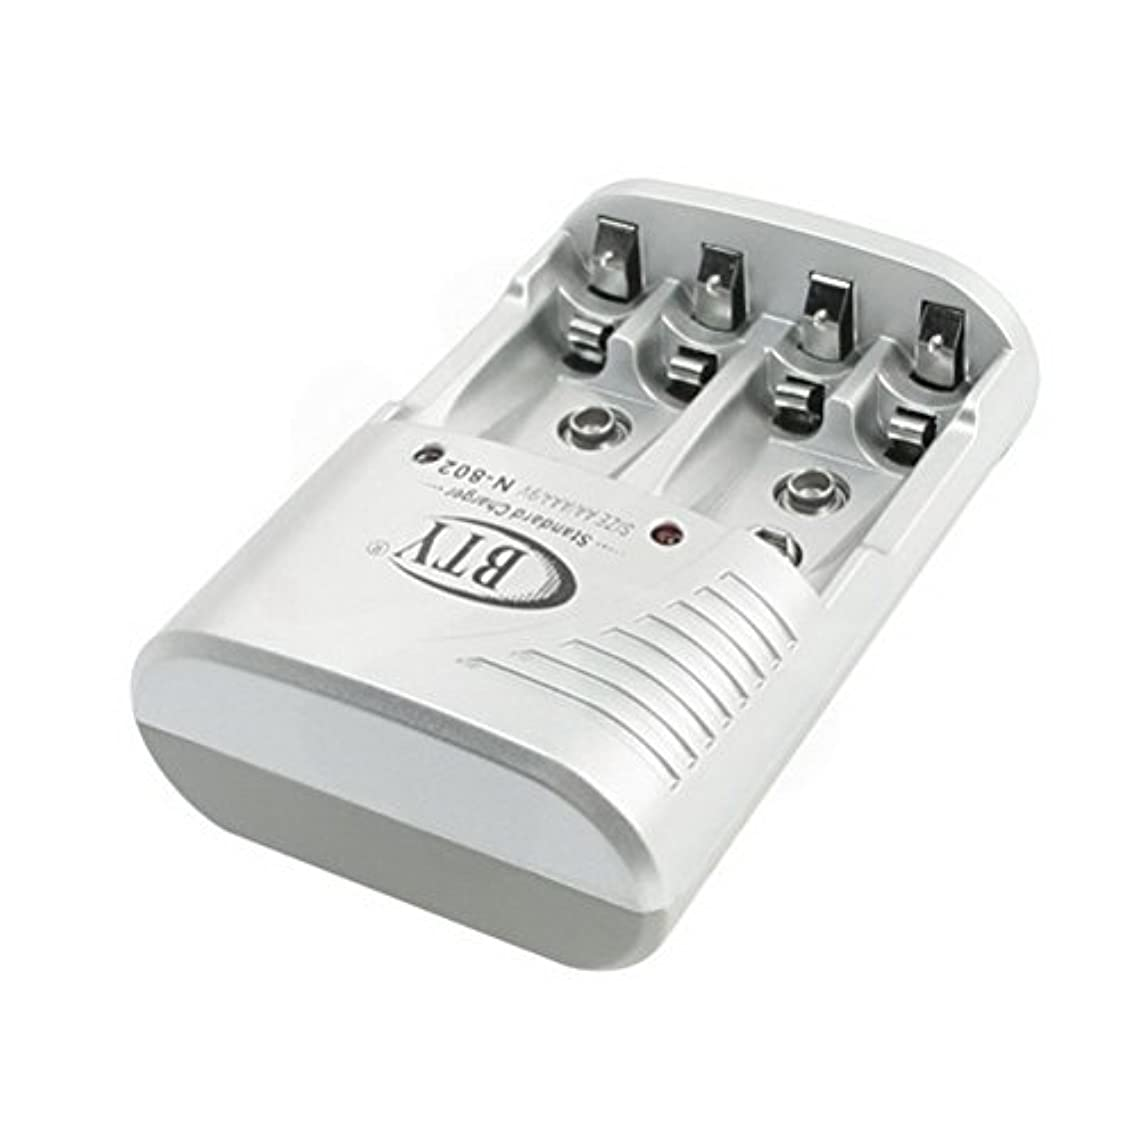 AC100-240V US Plug White Rectangle AA AAA 6F22 Battery Charger BTY 802 by Ucland